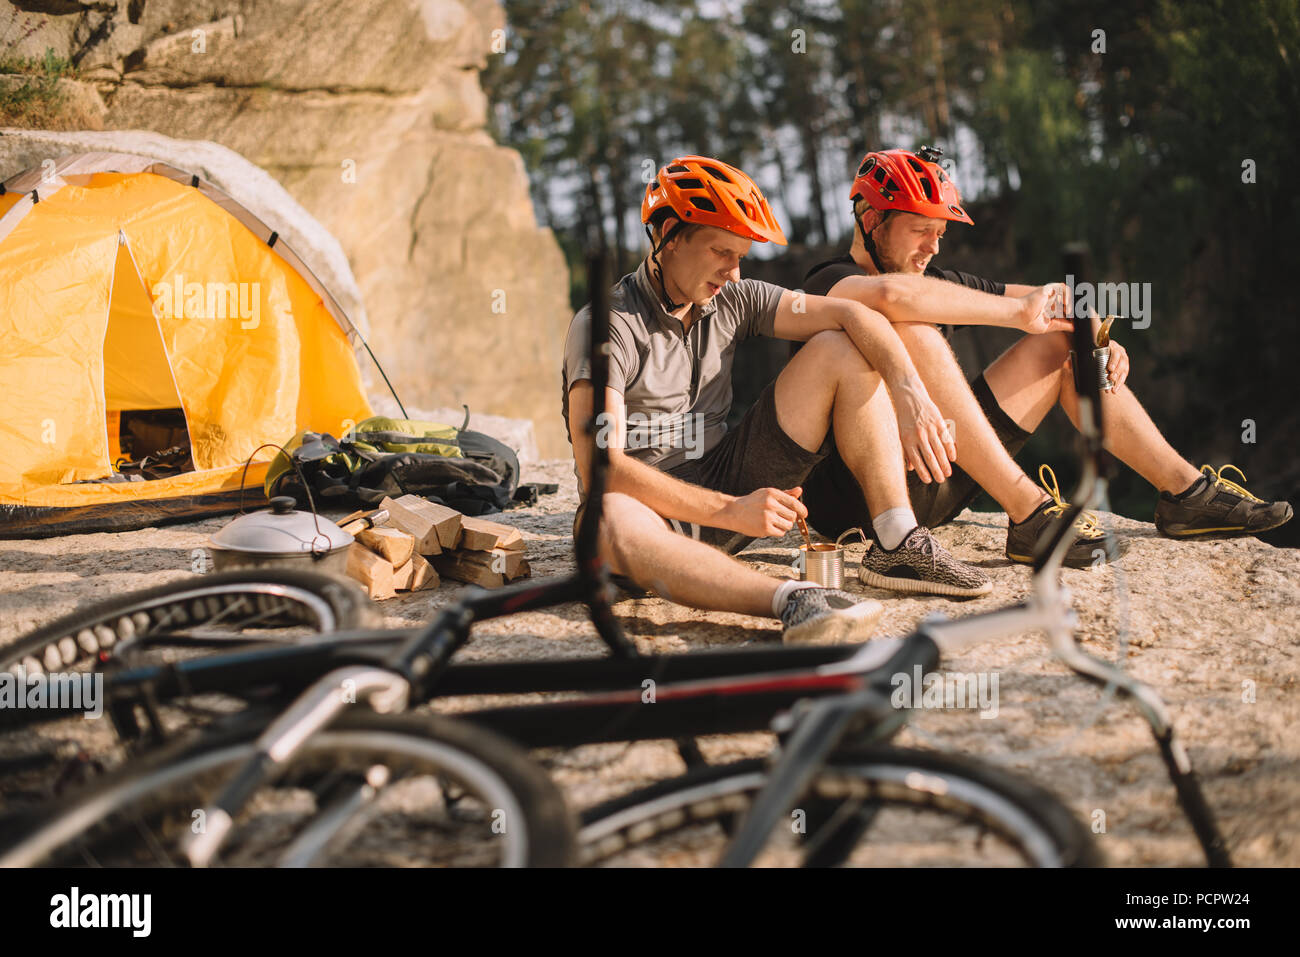 young trial bikers eating canned food in camping outdoors - Stock Image